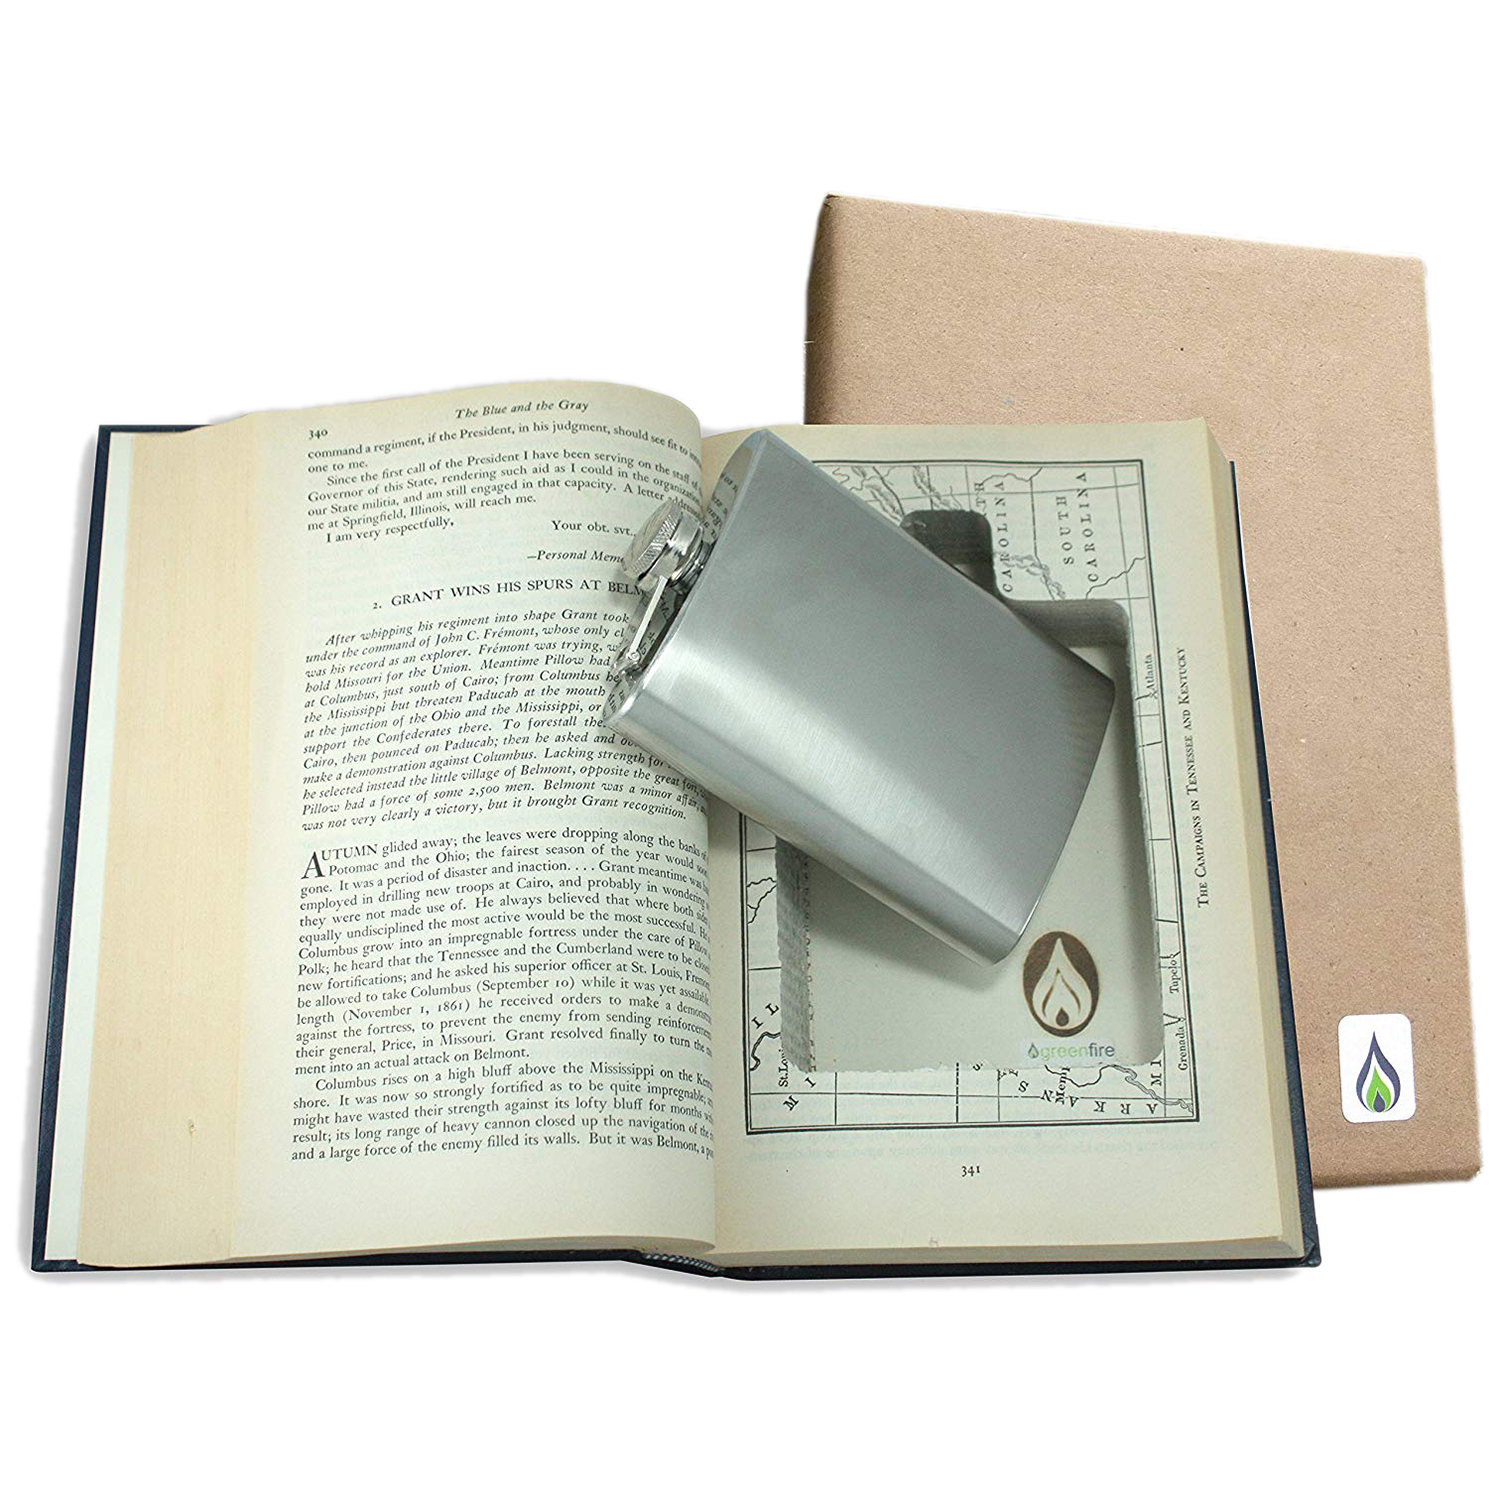 Funny gifts for men - SneakyBooks Recycled Hollow Book Hidden Flask